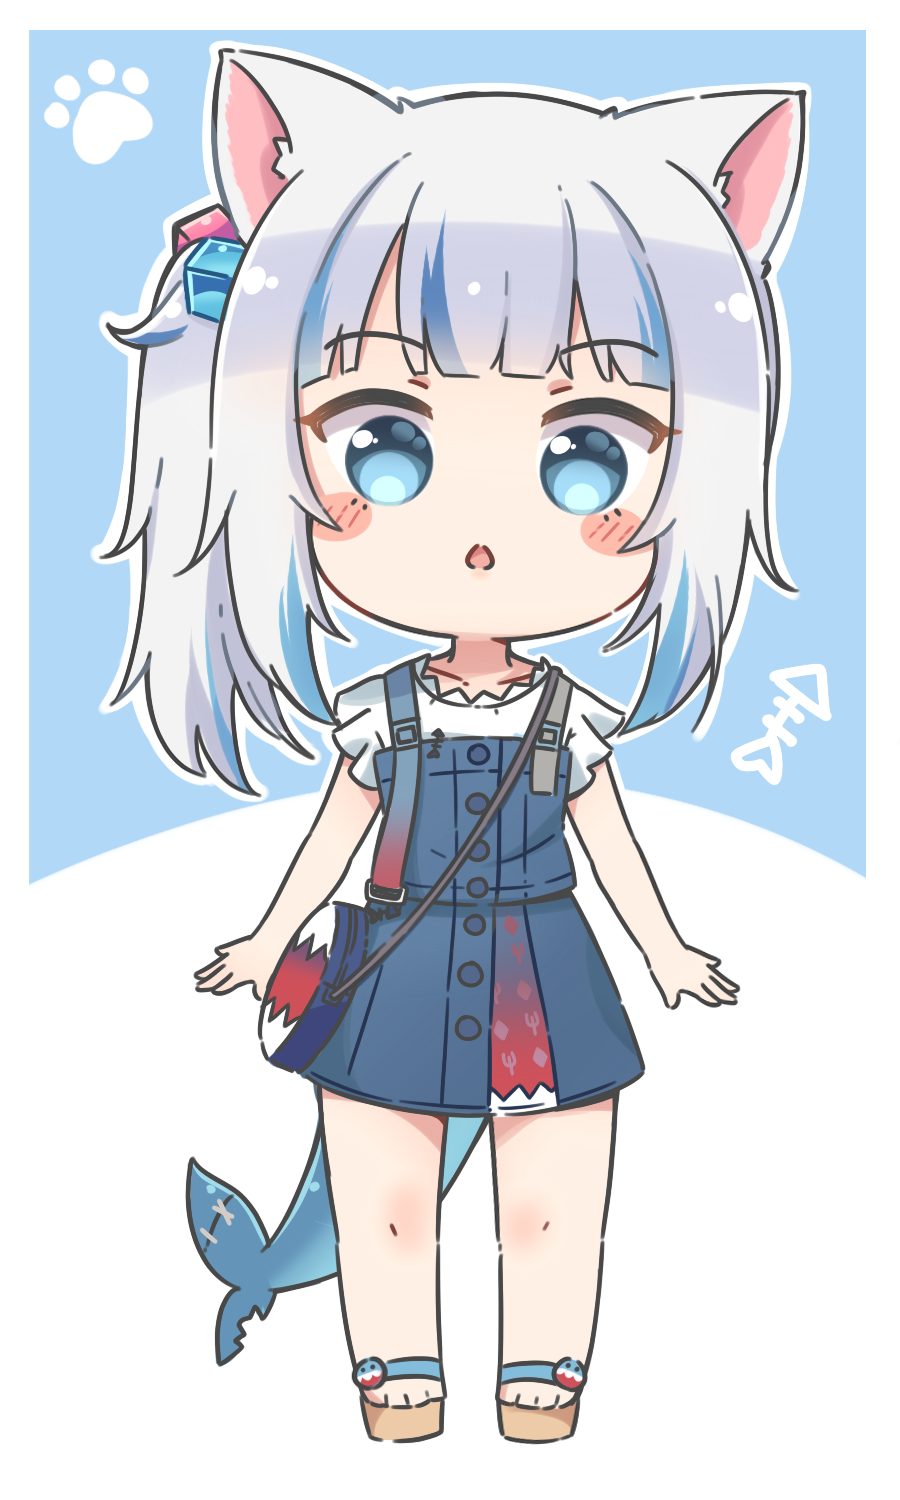 1girl :o animal_ear_fluff animal_ears bag bangs bare_arms blue_background blue_dress blue_eyes blue_hair blush_stickers brown_footwear cat_ears chibi commentary dress english_commentary eyebrows_visible_through_hair fish_tail full_body gawr_gura grey_hair hair_cubes hair_ornament highres hololive hololive_english looking_at_viewer multicolored_hair parted_lips rutorifuki sandals shark_tail shirt shoulder_bag side_ponytail sleeveless sleeveless_dress solo standing streaked_hair tail two-tone_background virtual_youtuber white_background white_shirt